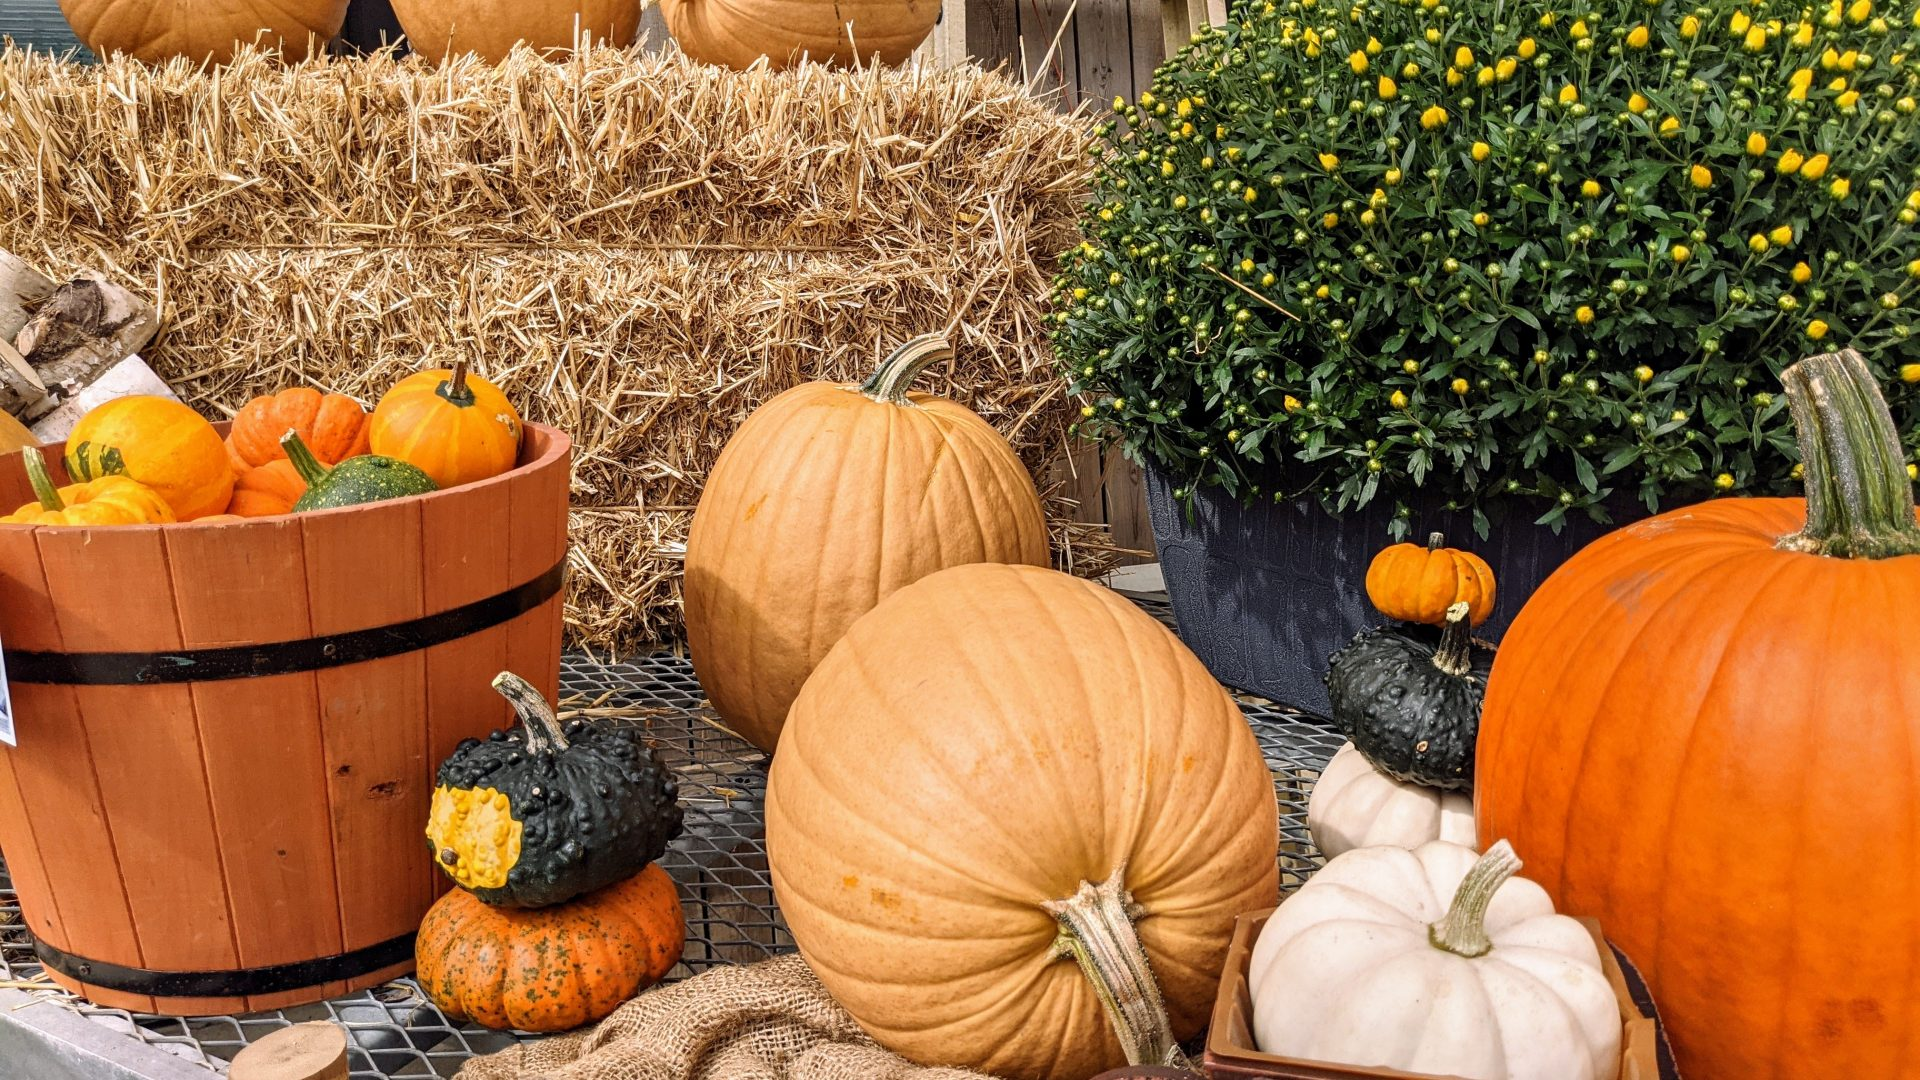 pumpkins,gourds, a mum and straw in the background